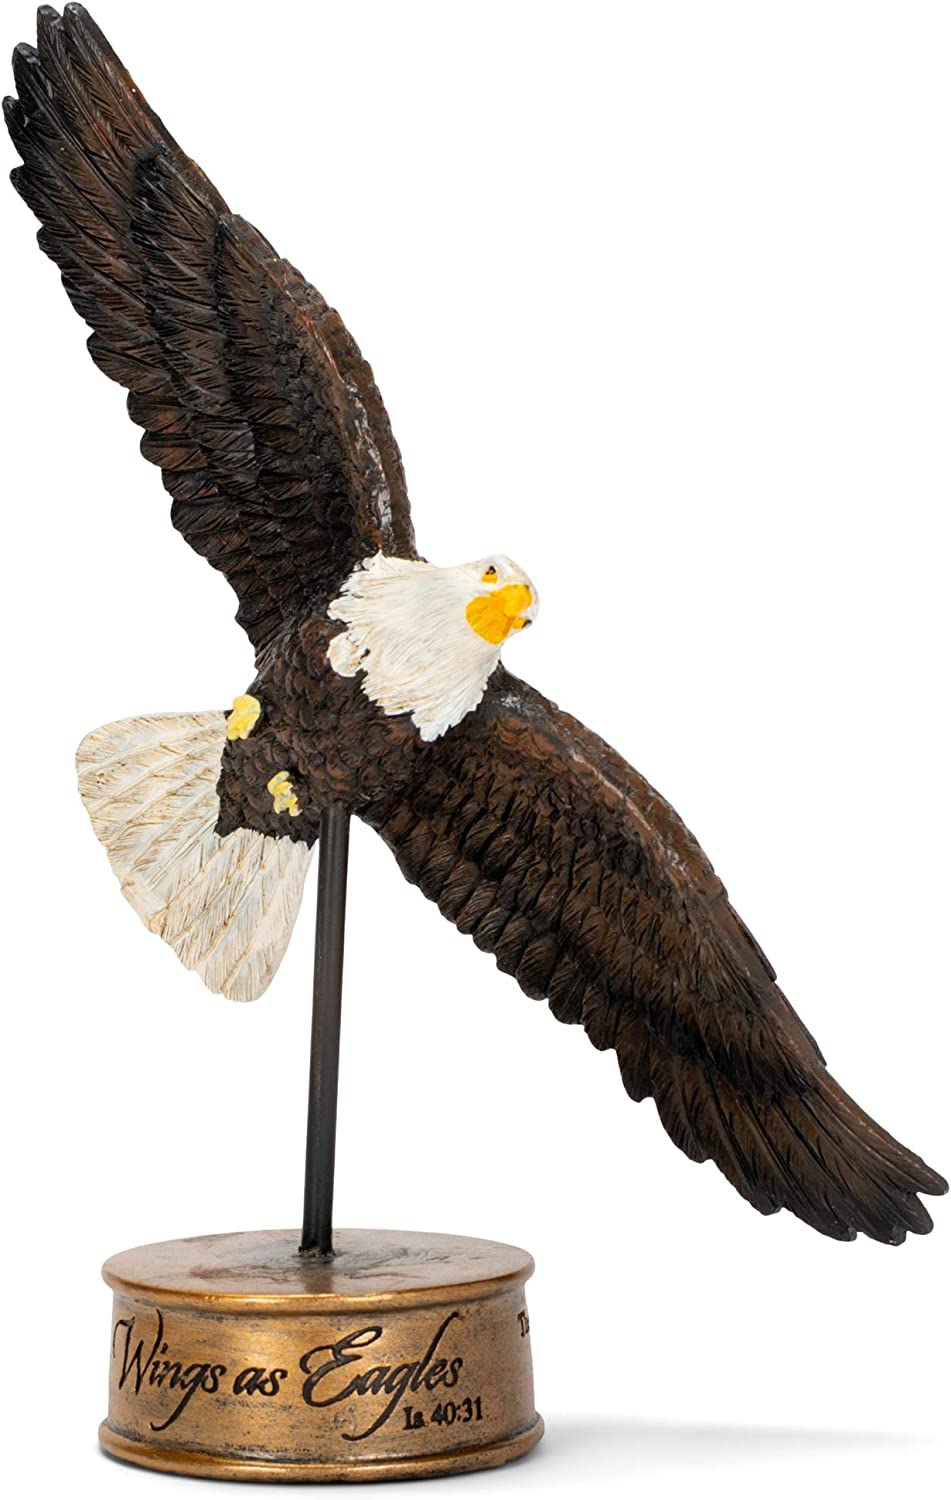 Dicksons Soaring Isaiah 40:31 Wings as Eagles 7 inch Resin Stone Table Top Figurine